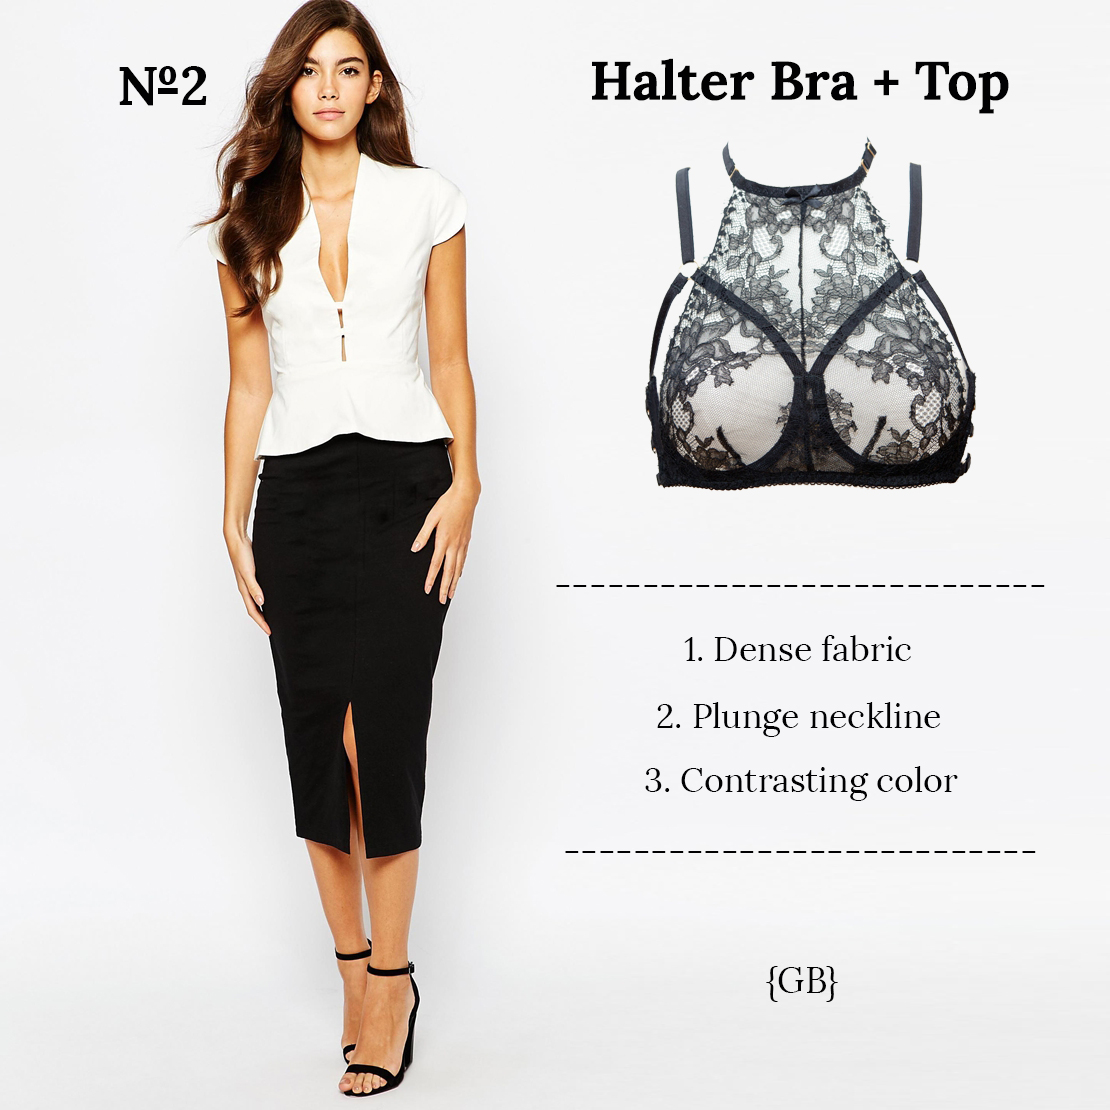 Style Guide: High Neck Halter Bra in Your Outfit